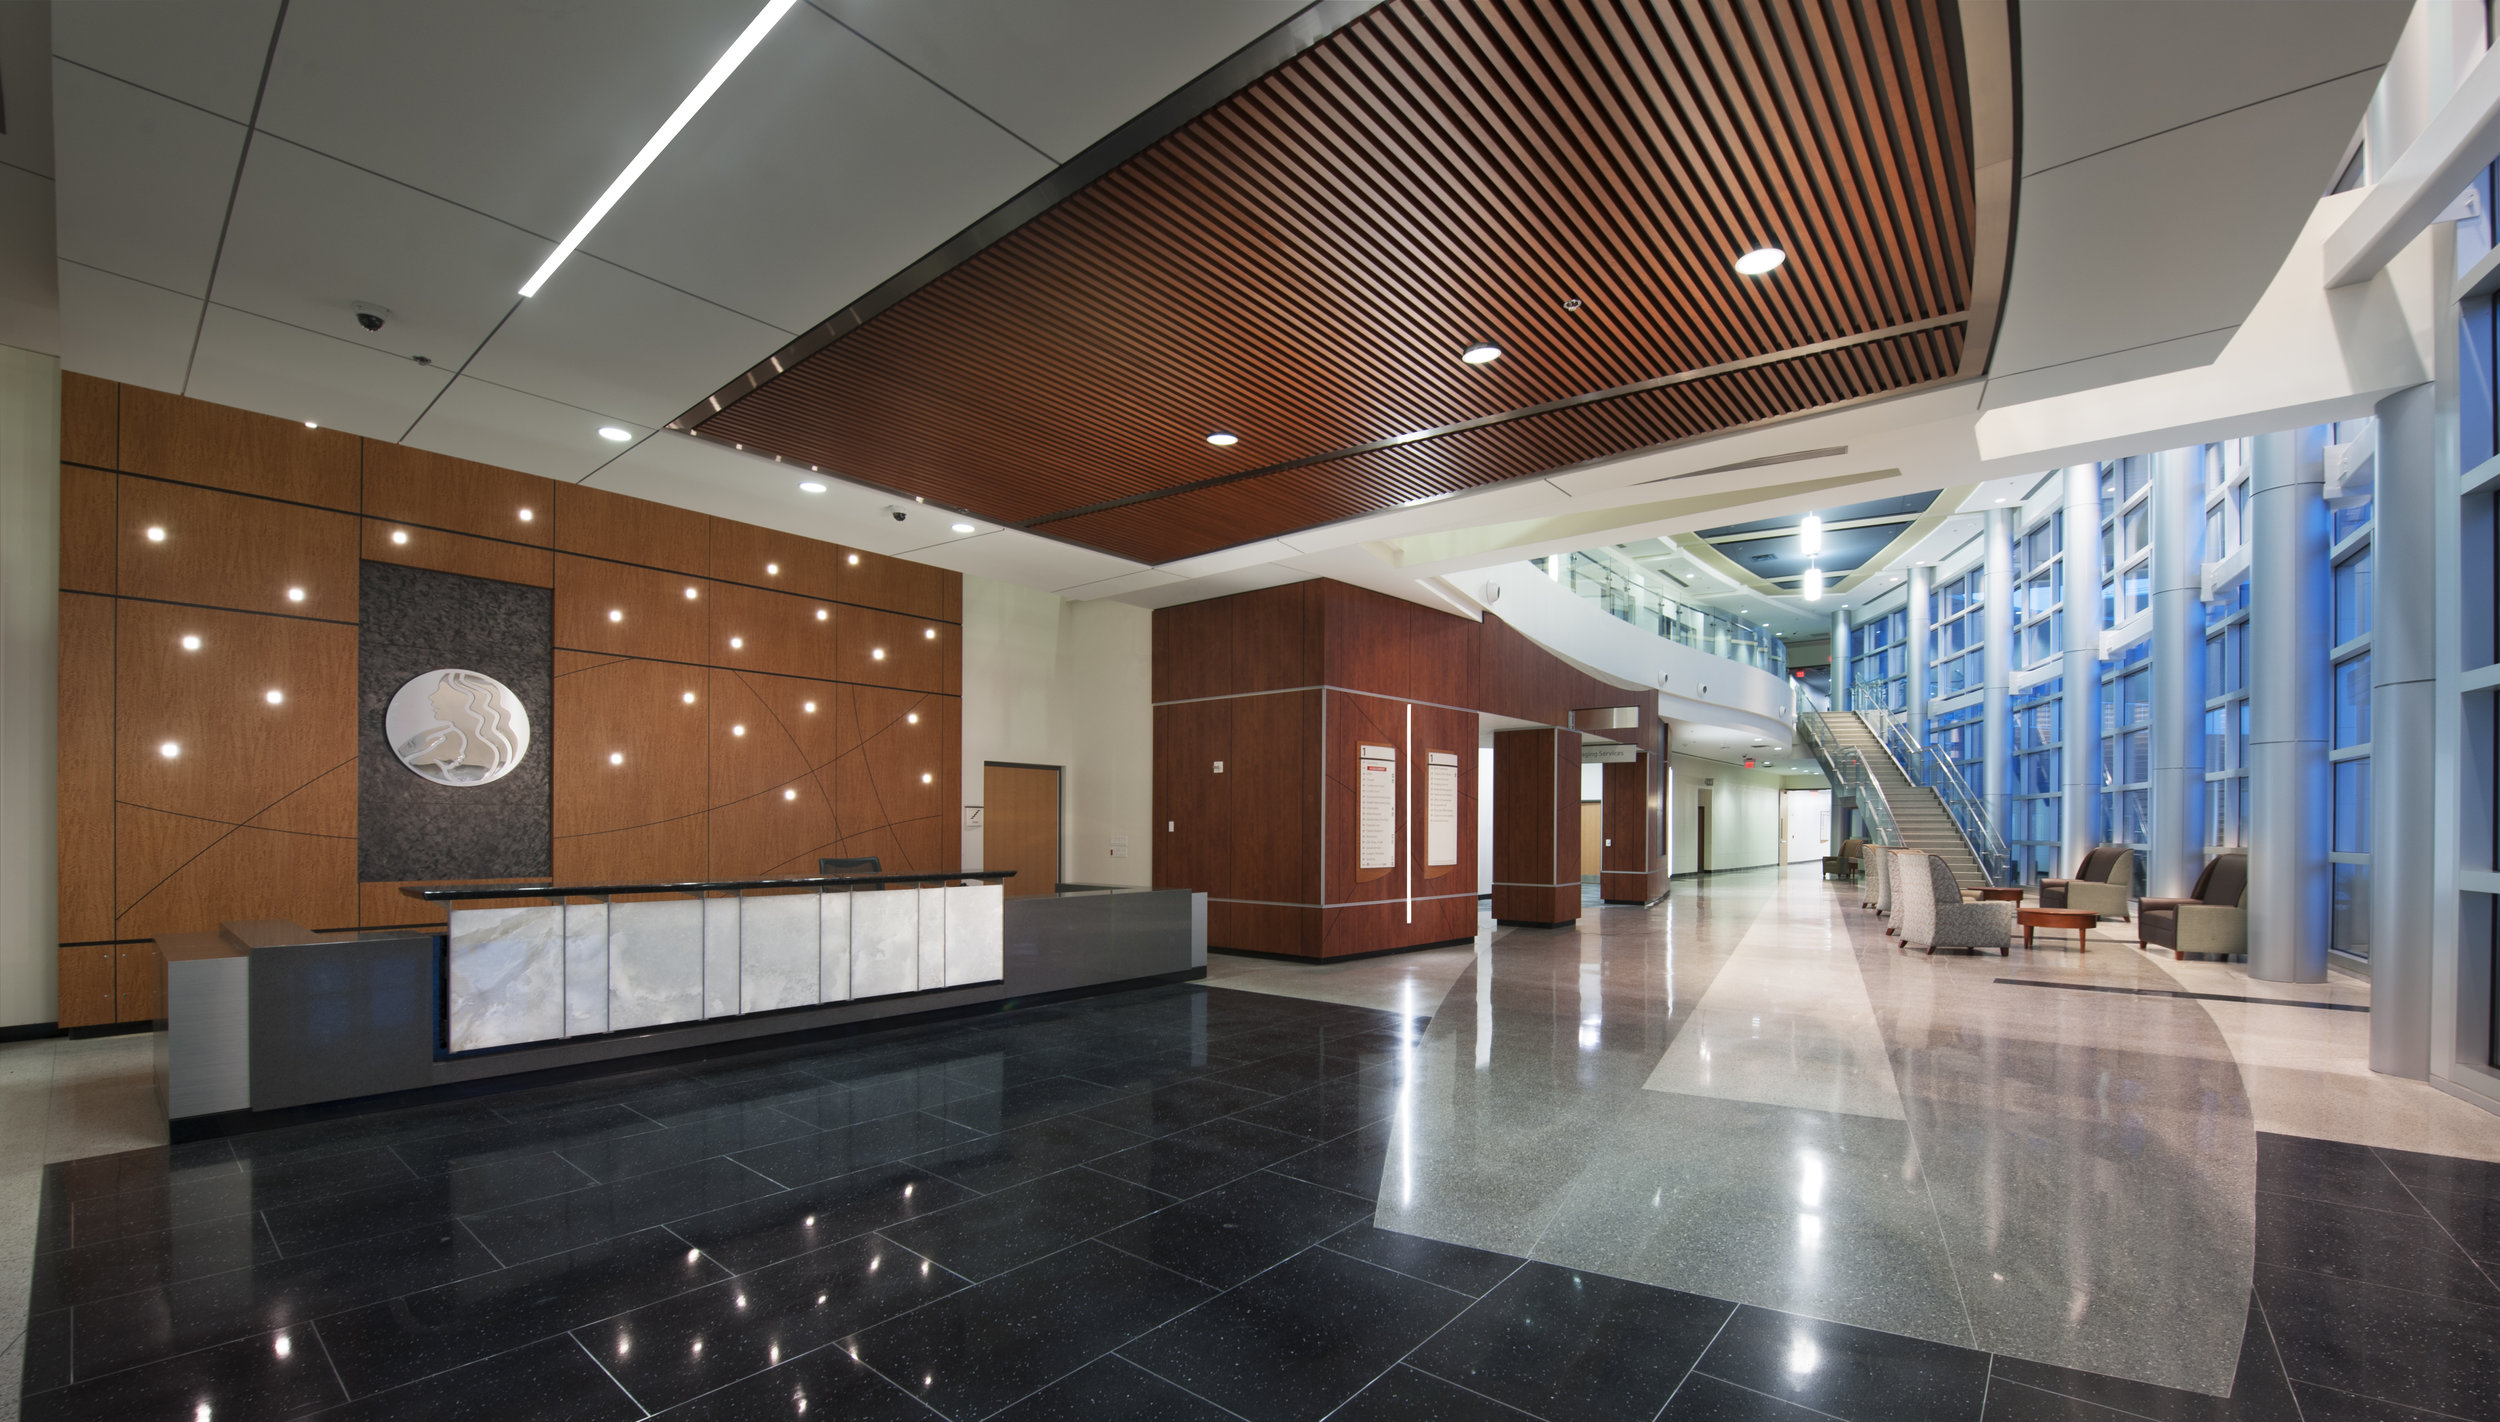 One-to-One-Design - Womans Hospital Baton Rouge - 01.jpg